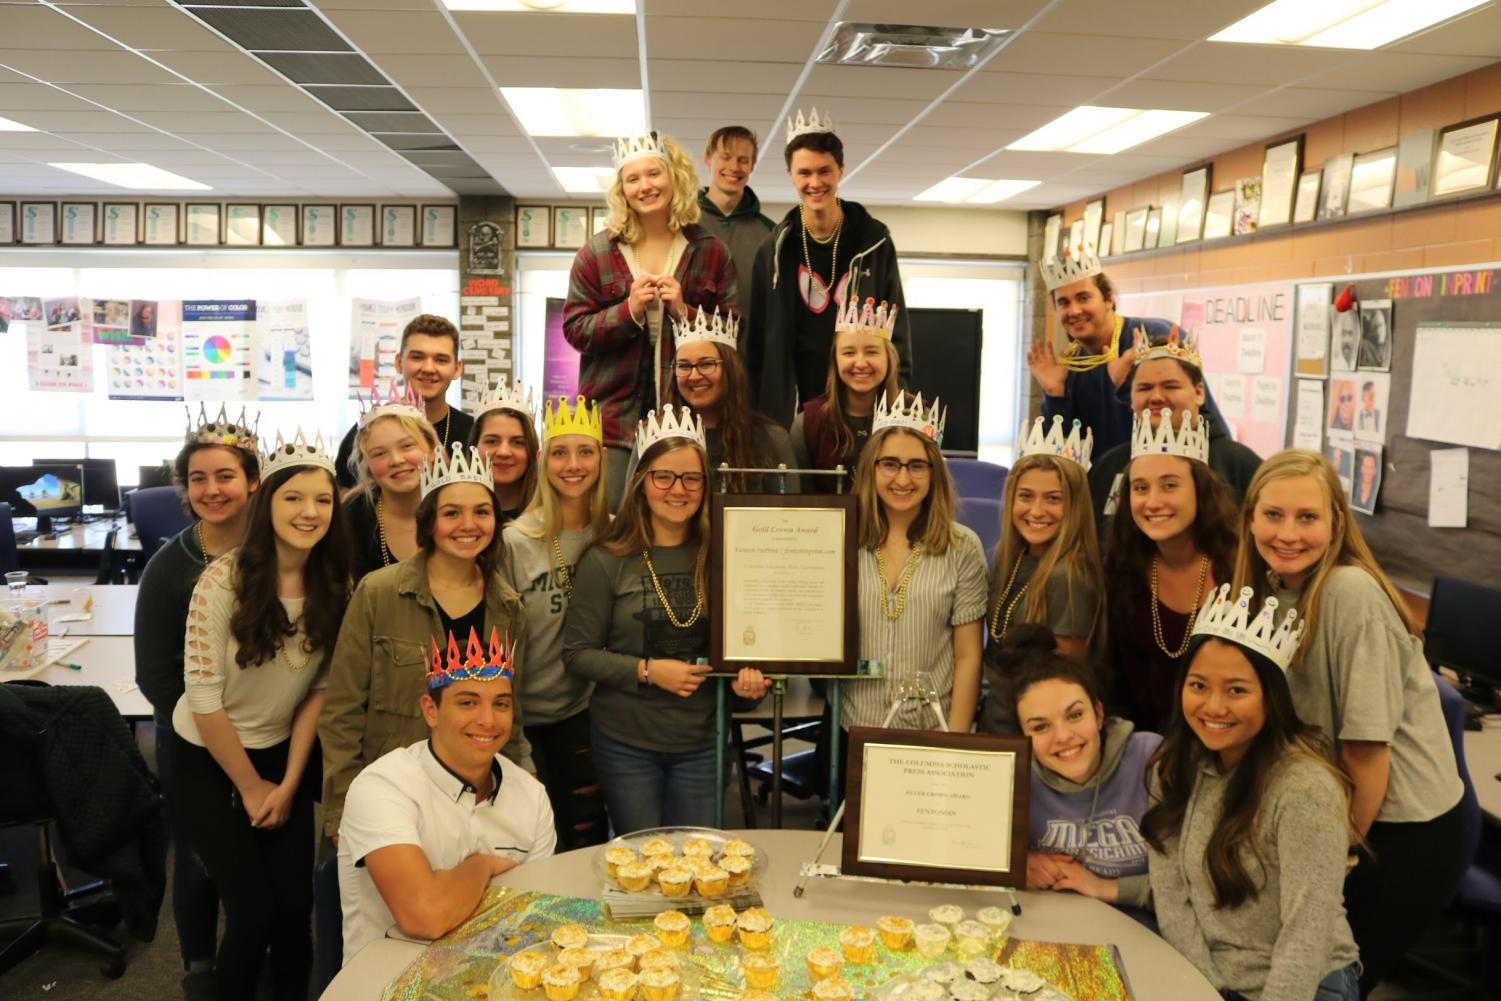 Members of the Fenton InPrint staff pose with the Gold Crown award.